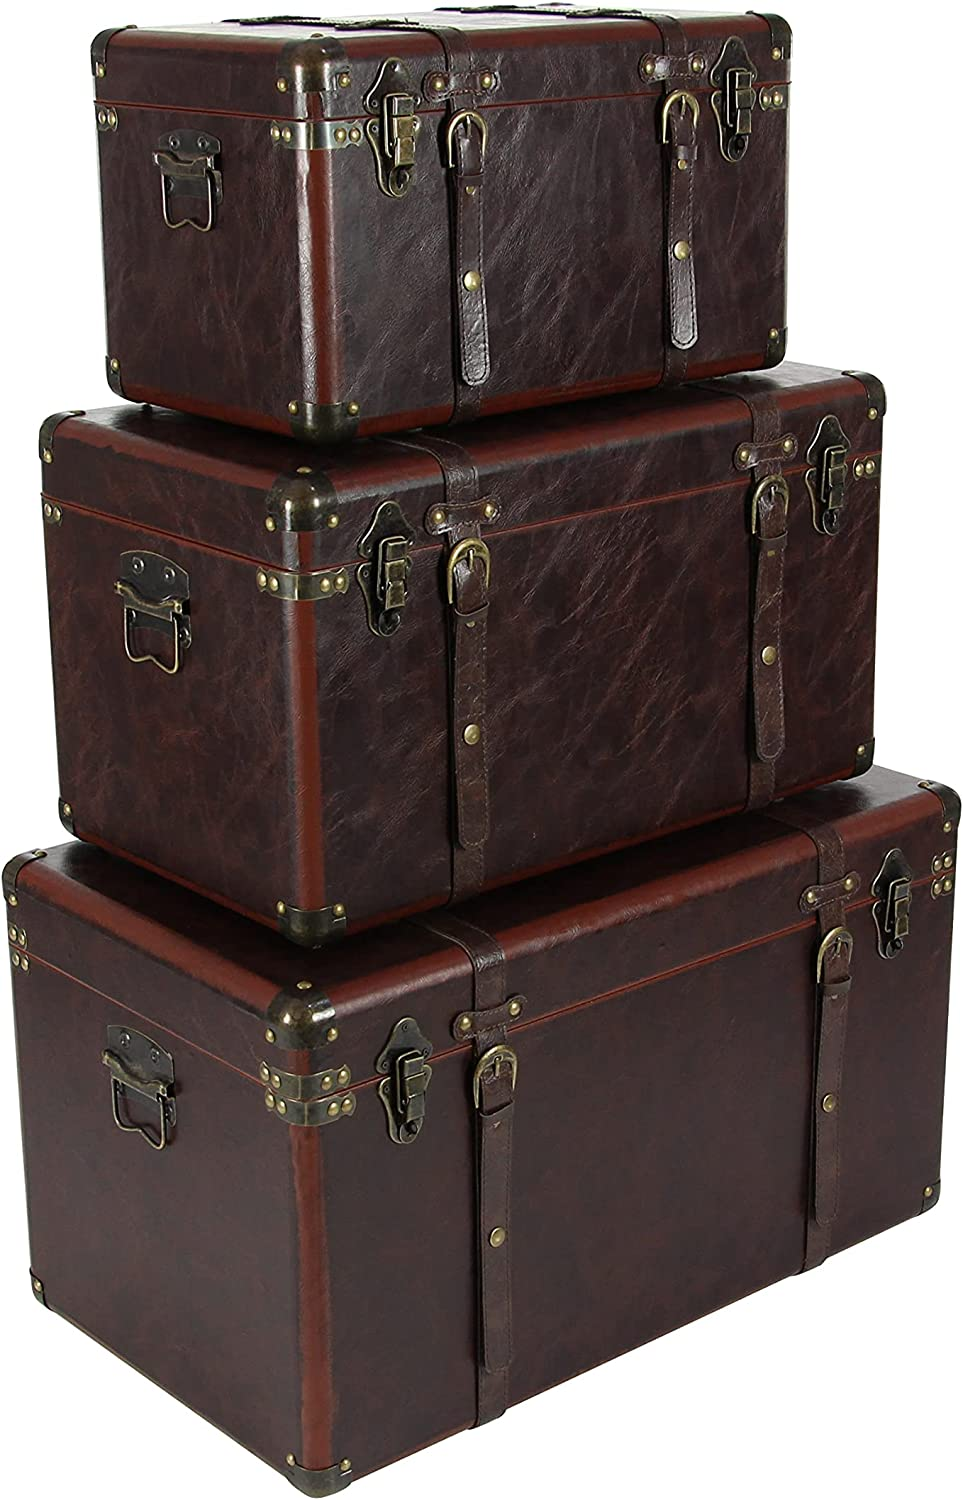 Deco 79 56977 Matte Leather All stores are sold and of Wood Set Brown Trunks 3 Long-awaited